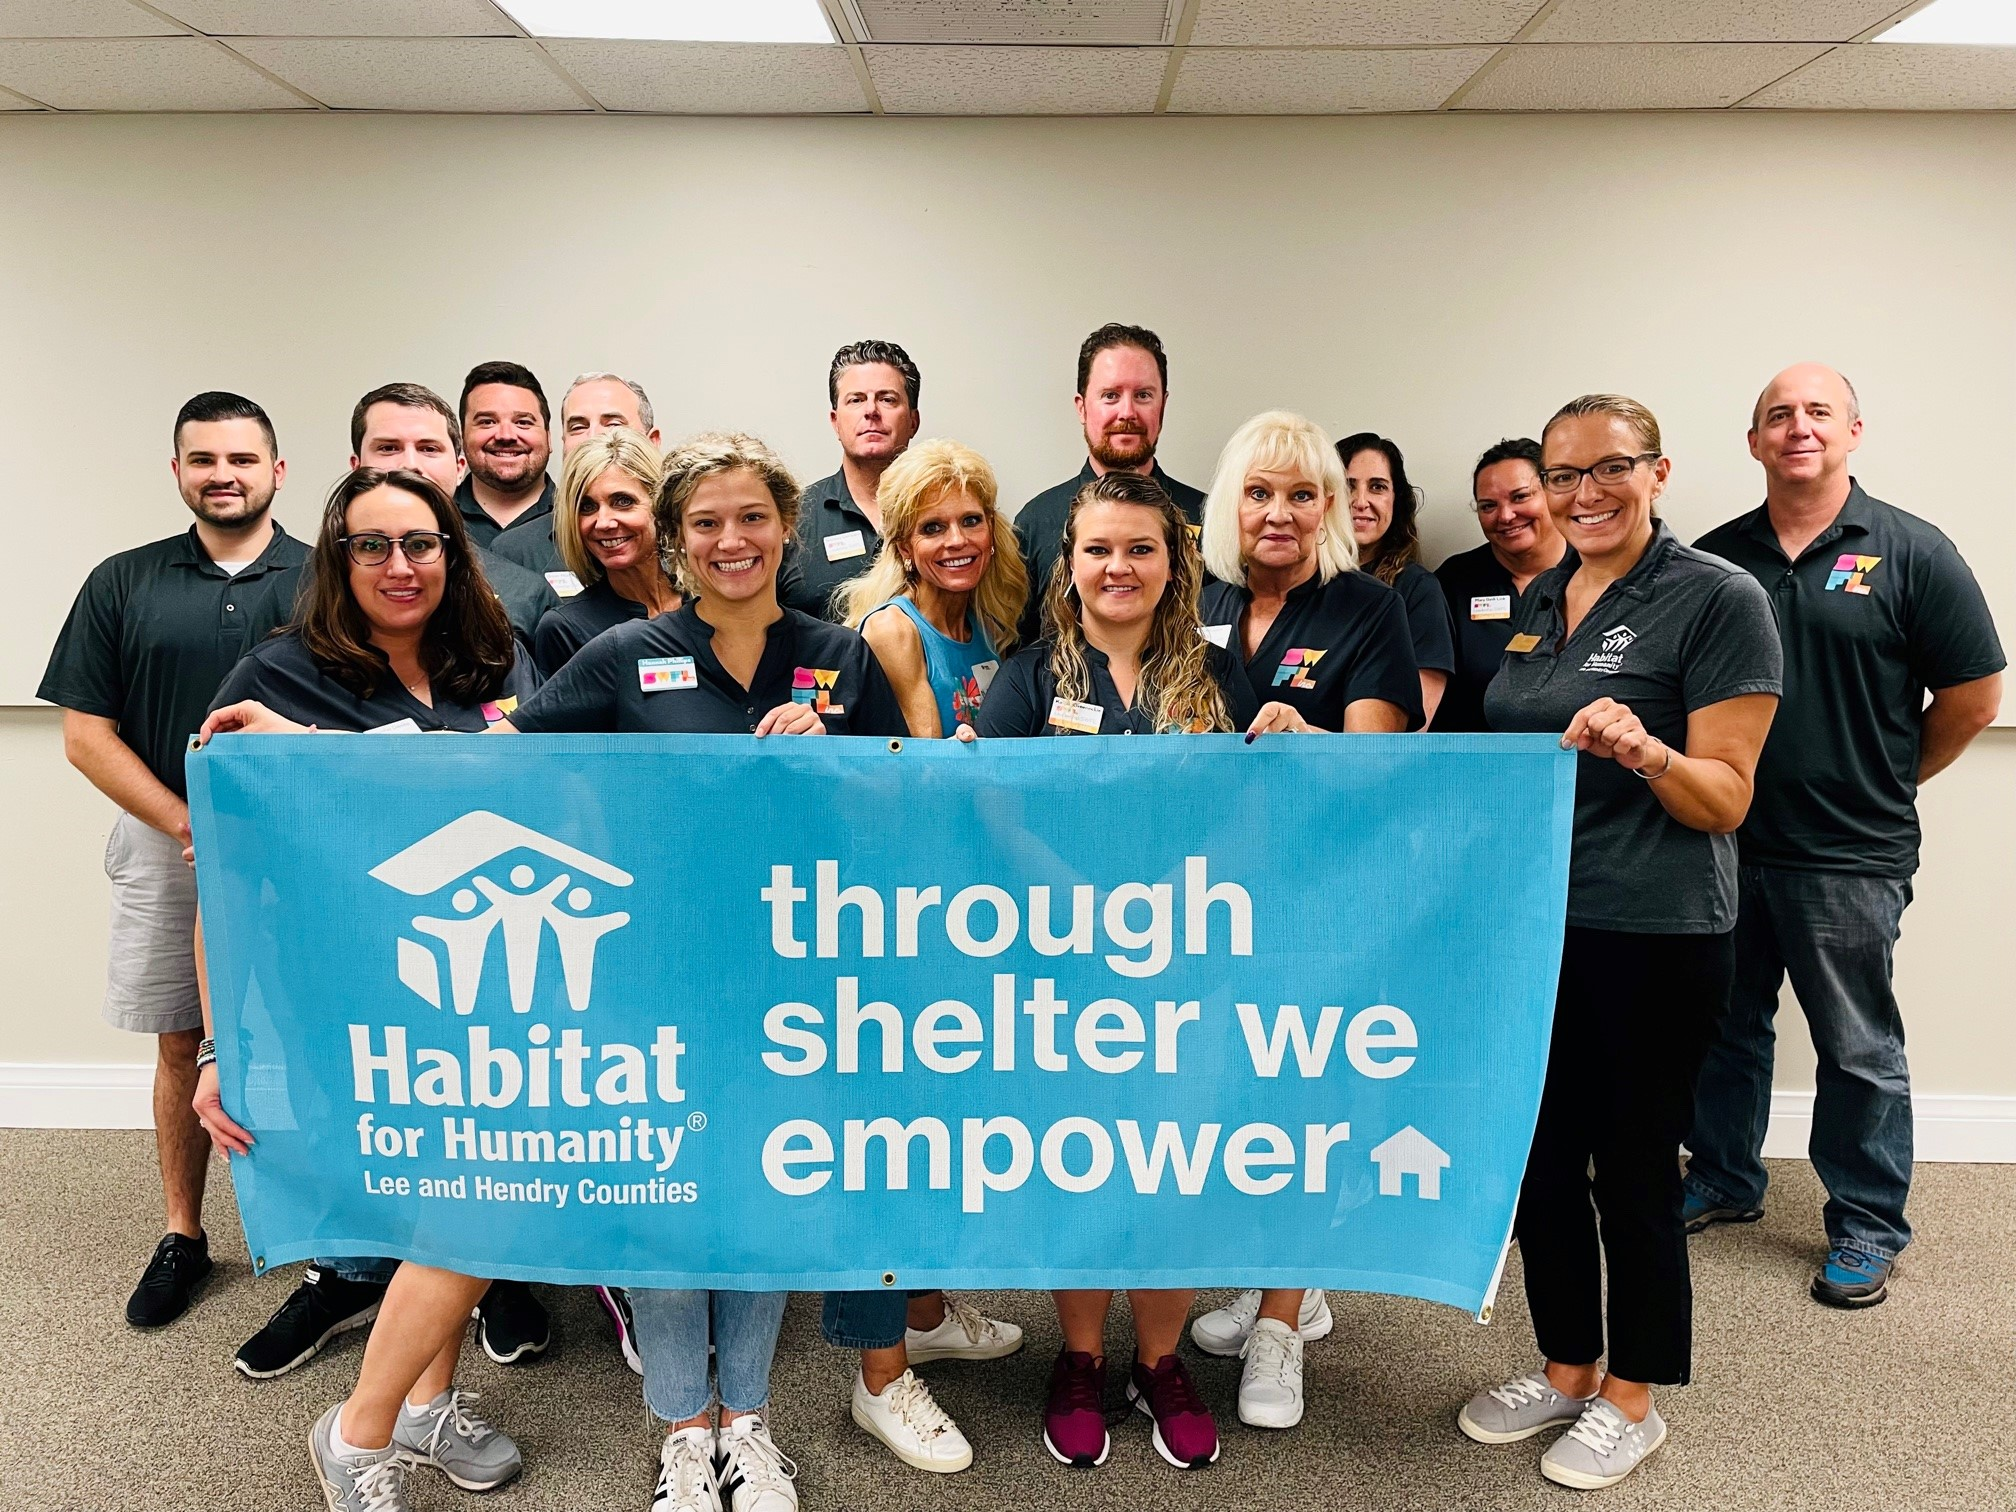 Leadership Southwest Florida 2021 Class visiting with Habitat for Humanity of Lee and Hendry Counties